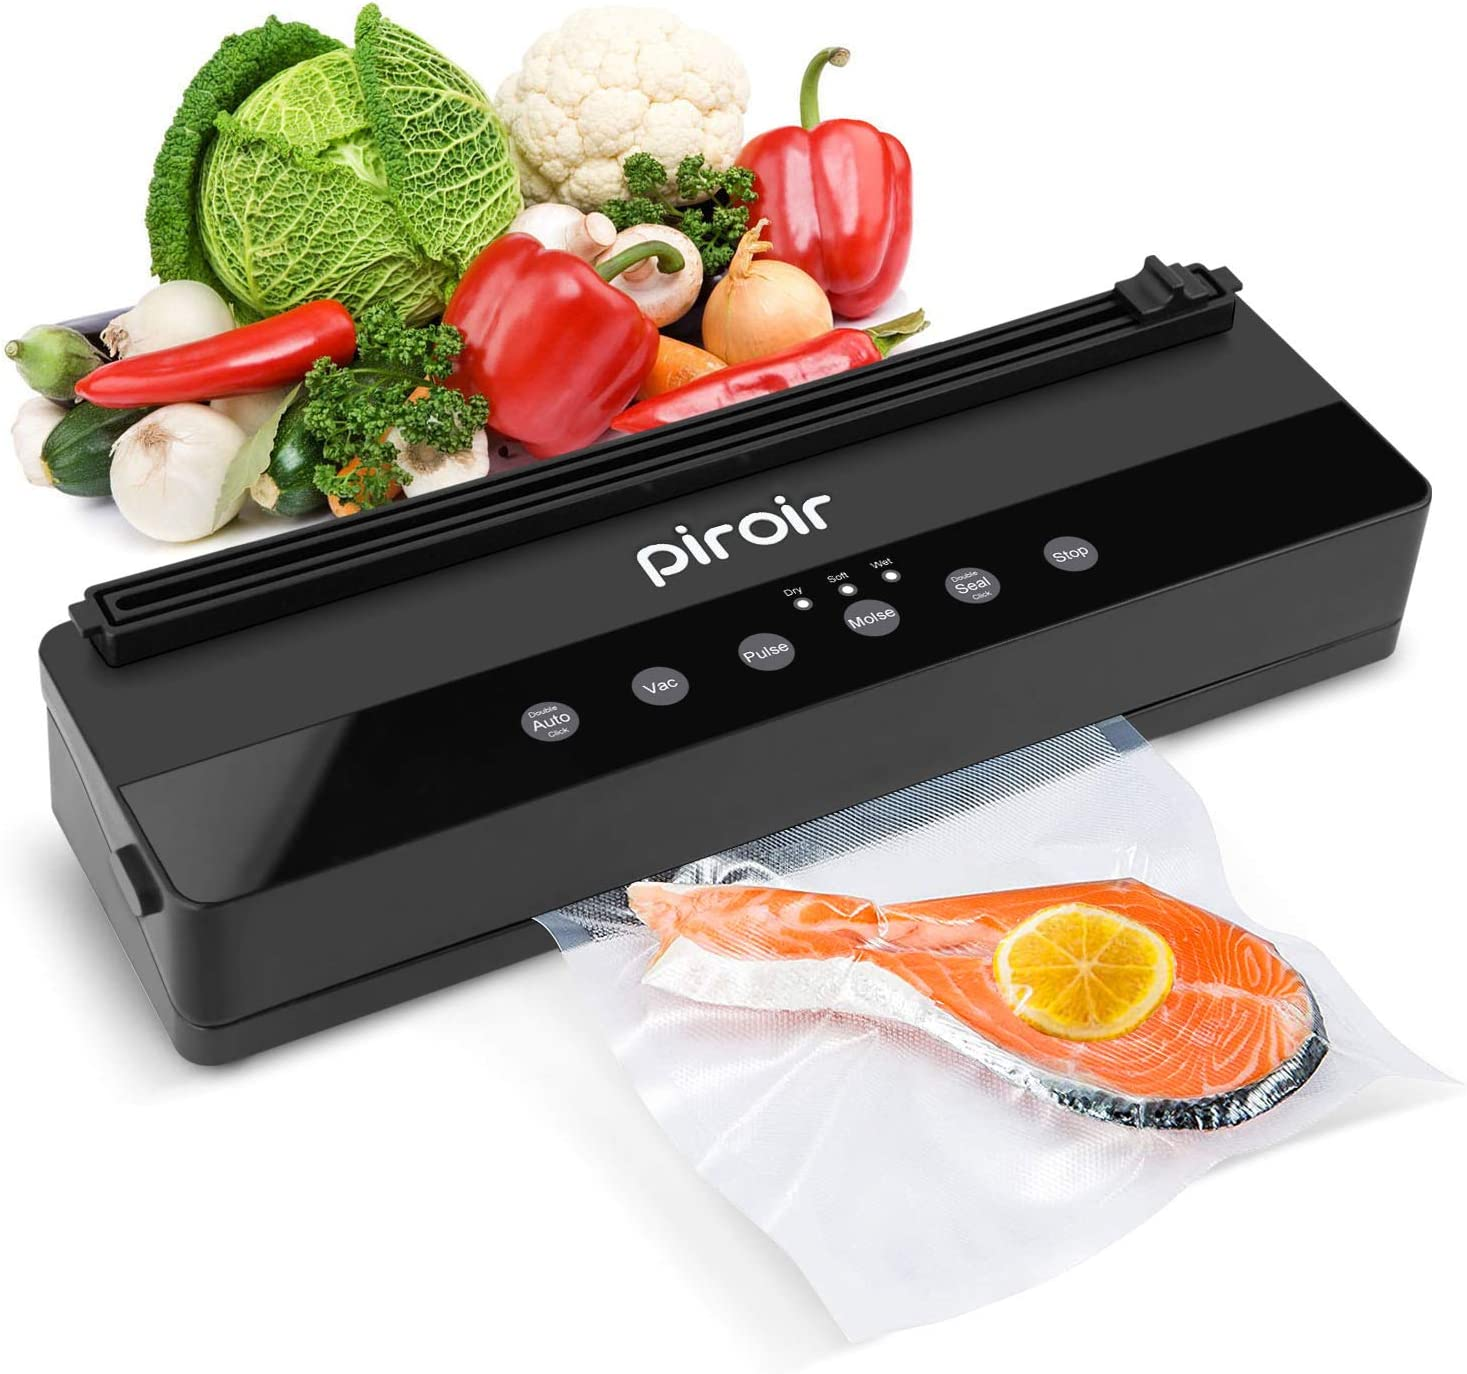 Piroir Vacuum Sealer Machine|Automatic Vacuum Air Sealing System For Food Preservation|Built-in Cutter| Starter Kit|Led Indicator Lights | Dry & Moist Food Modes| Compact Design 1 Roll Vacuum Bag+5 Bags